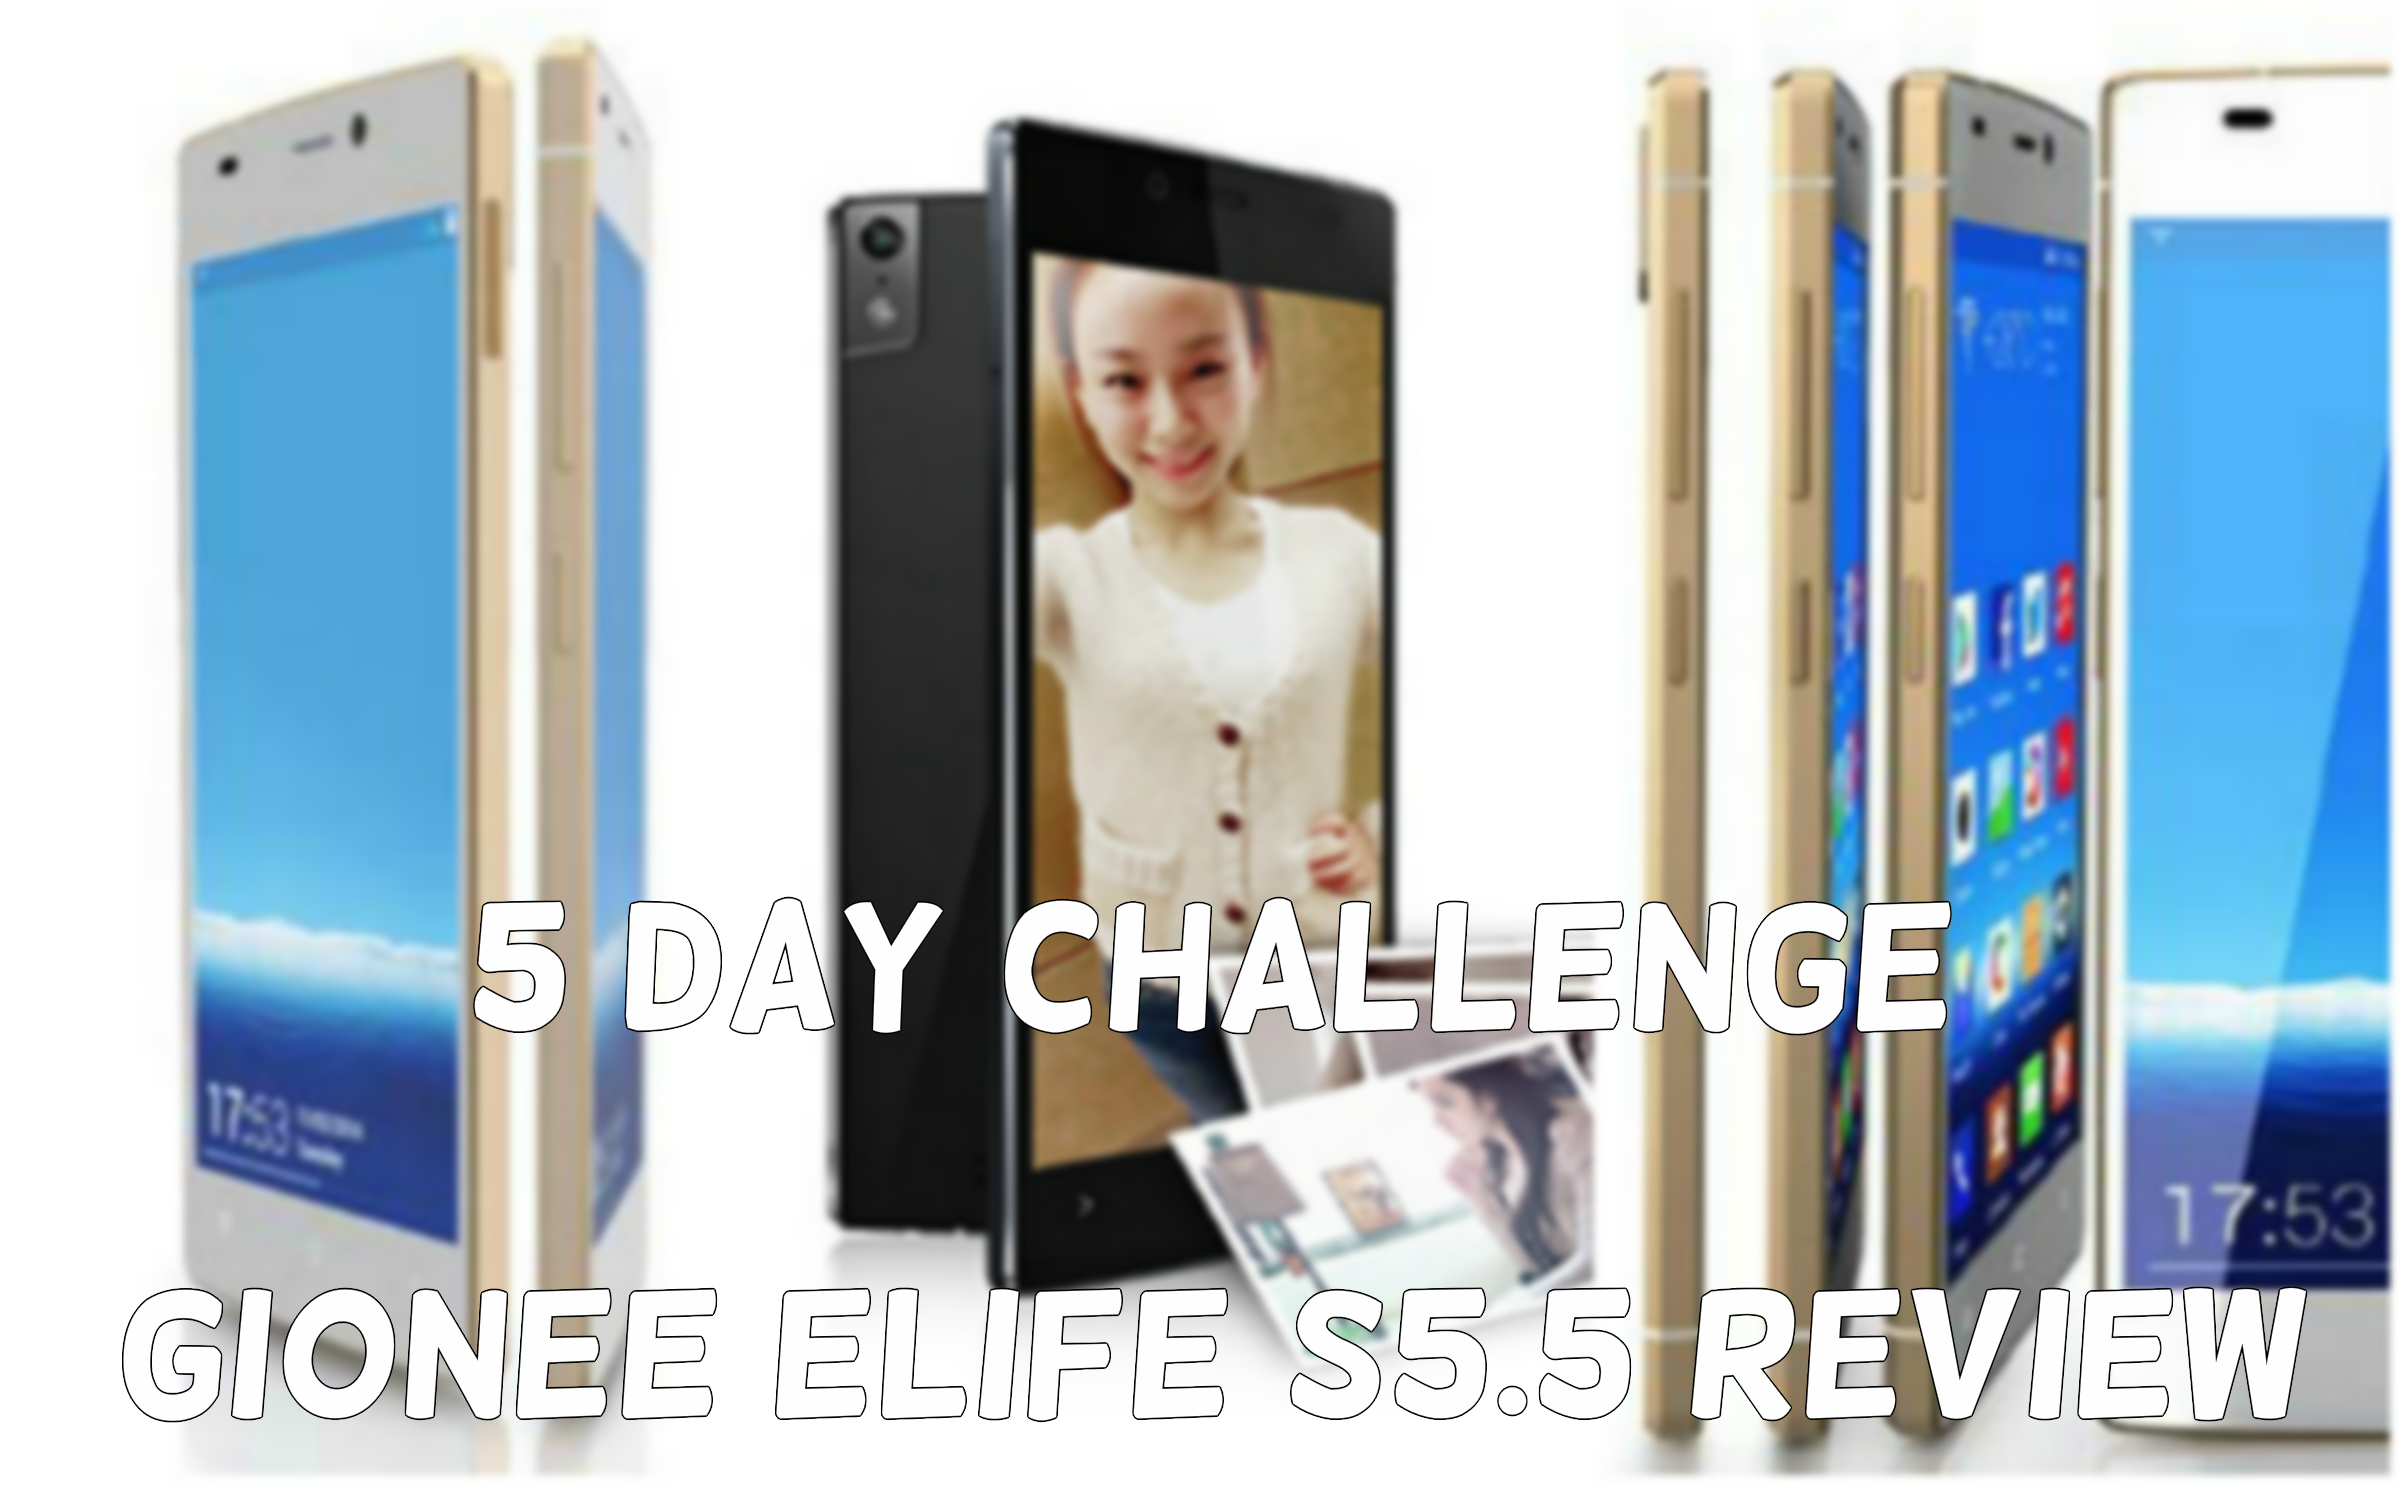 Gionee Elife S5.5 Challenge AdvicesMedia